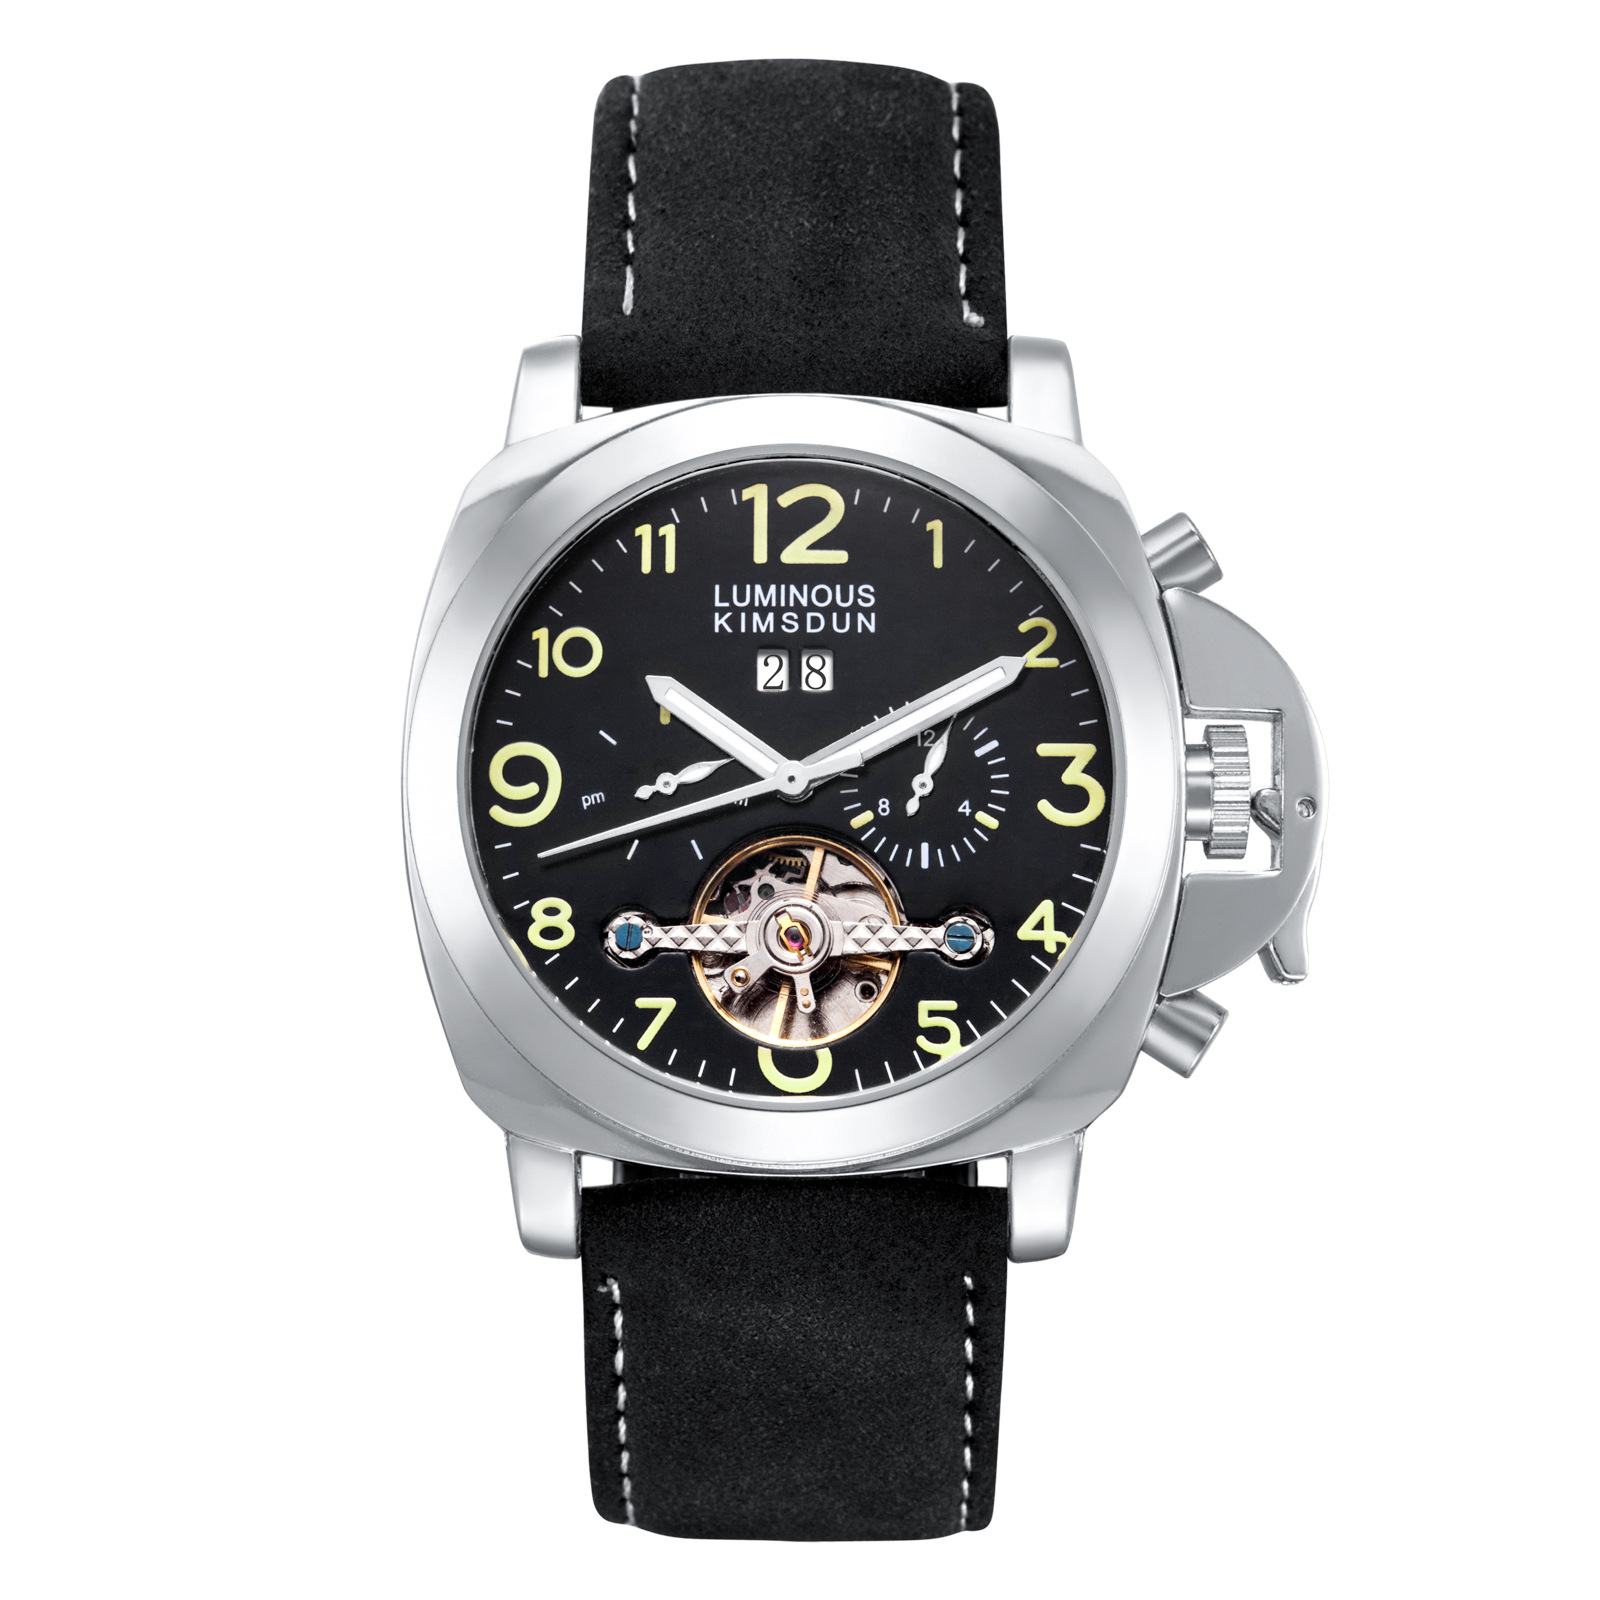 Automatic mechanical watch foreign trade belt Tuo Fei wheel waterproof night light men's watch 44mm micron Leader Luminous Hands